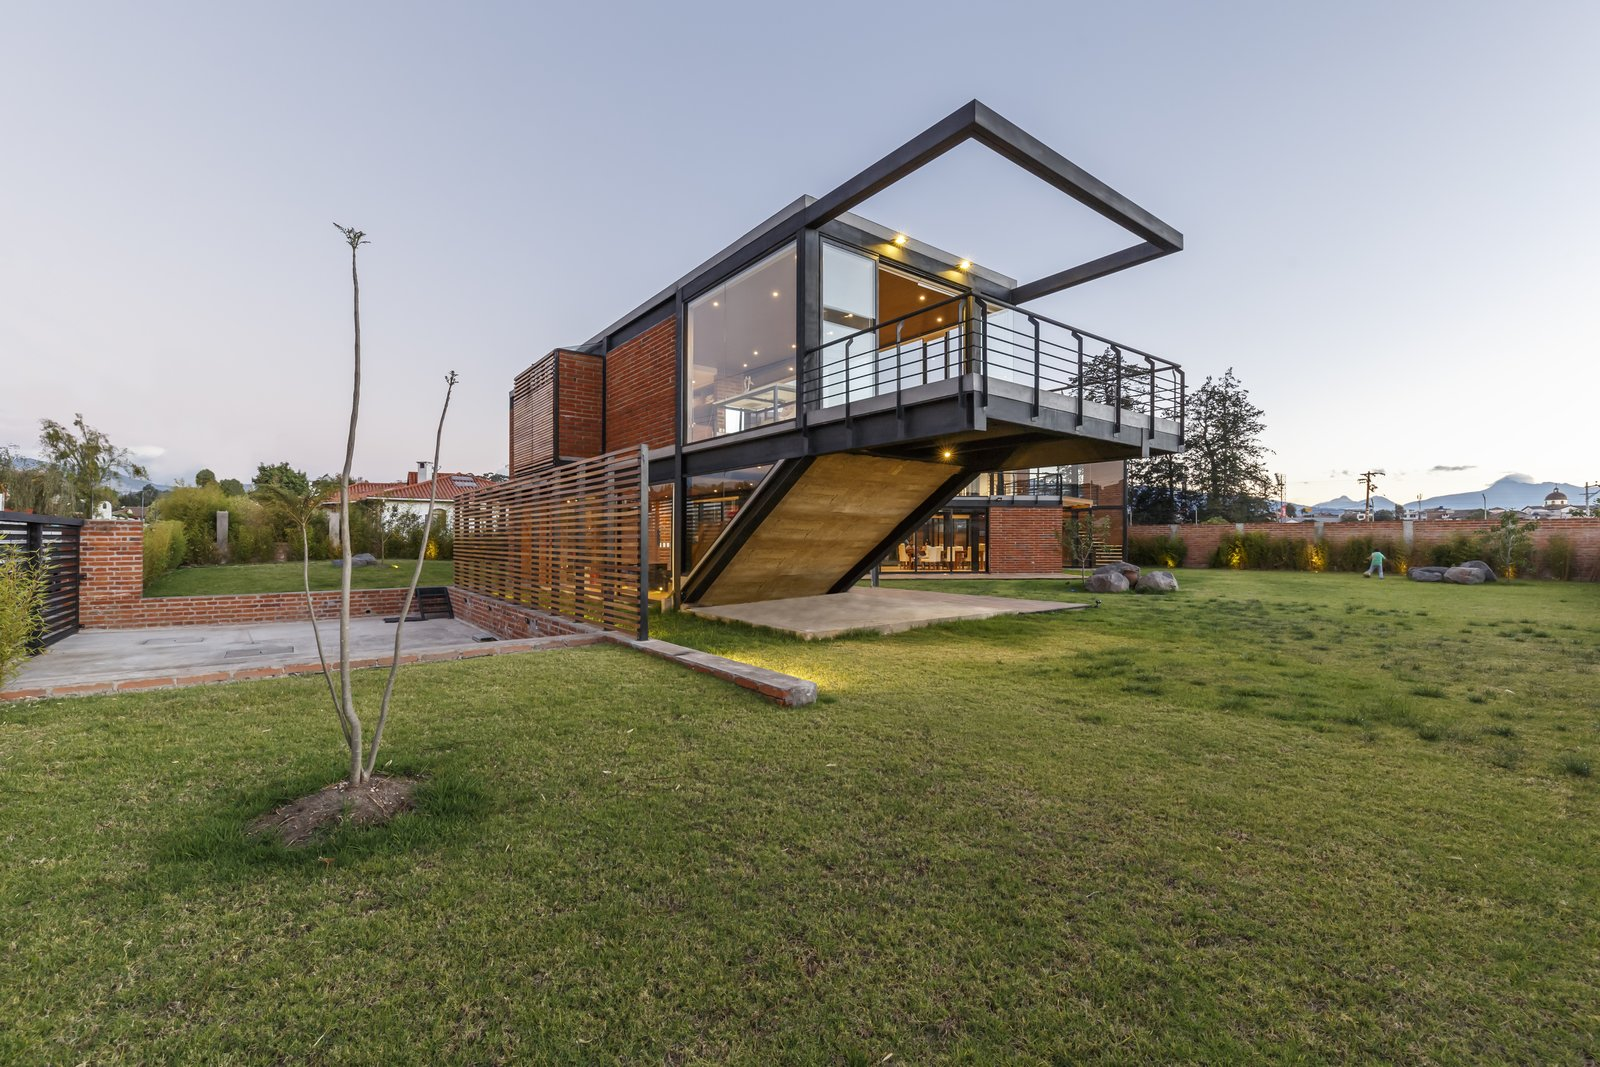 Exterior, Metal Roof Material, Brick Siding Material, House Building Type, Glass Siding Material, Flat RoofLine, and Wood Siding Material To enable the two families to live independently, and interdependently, Estudio A0 co-founder Ana María Durán Calisto came up with a 5,457-square-foot home that consists of two volumes, set in a Z formation.  Best Photos from A Family Lives Harmoniously Together in This Captivating Multi-Generational Home